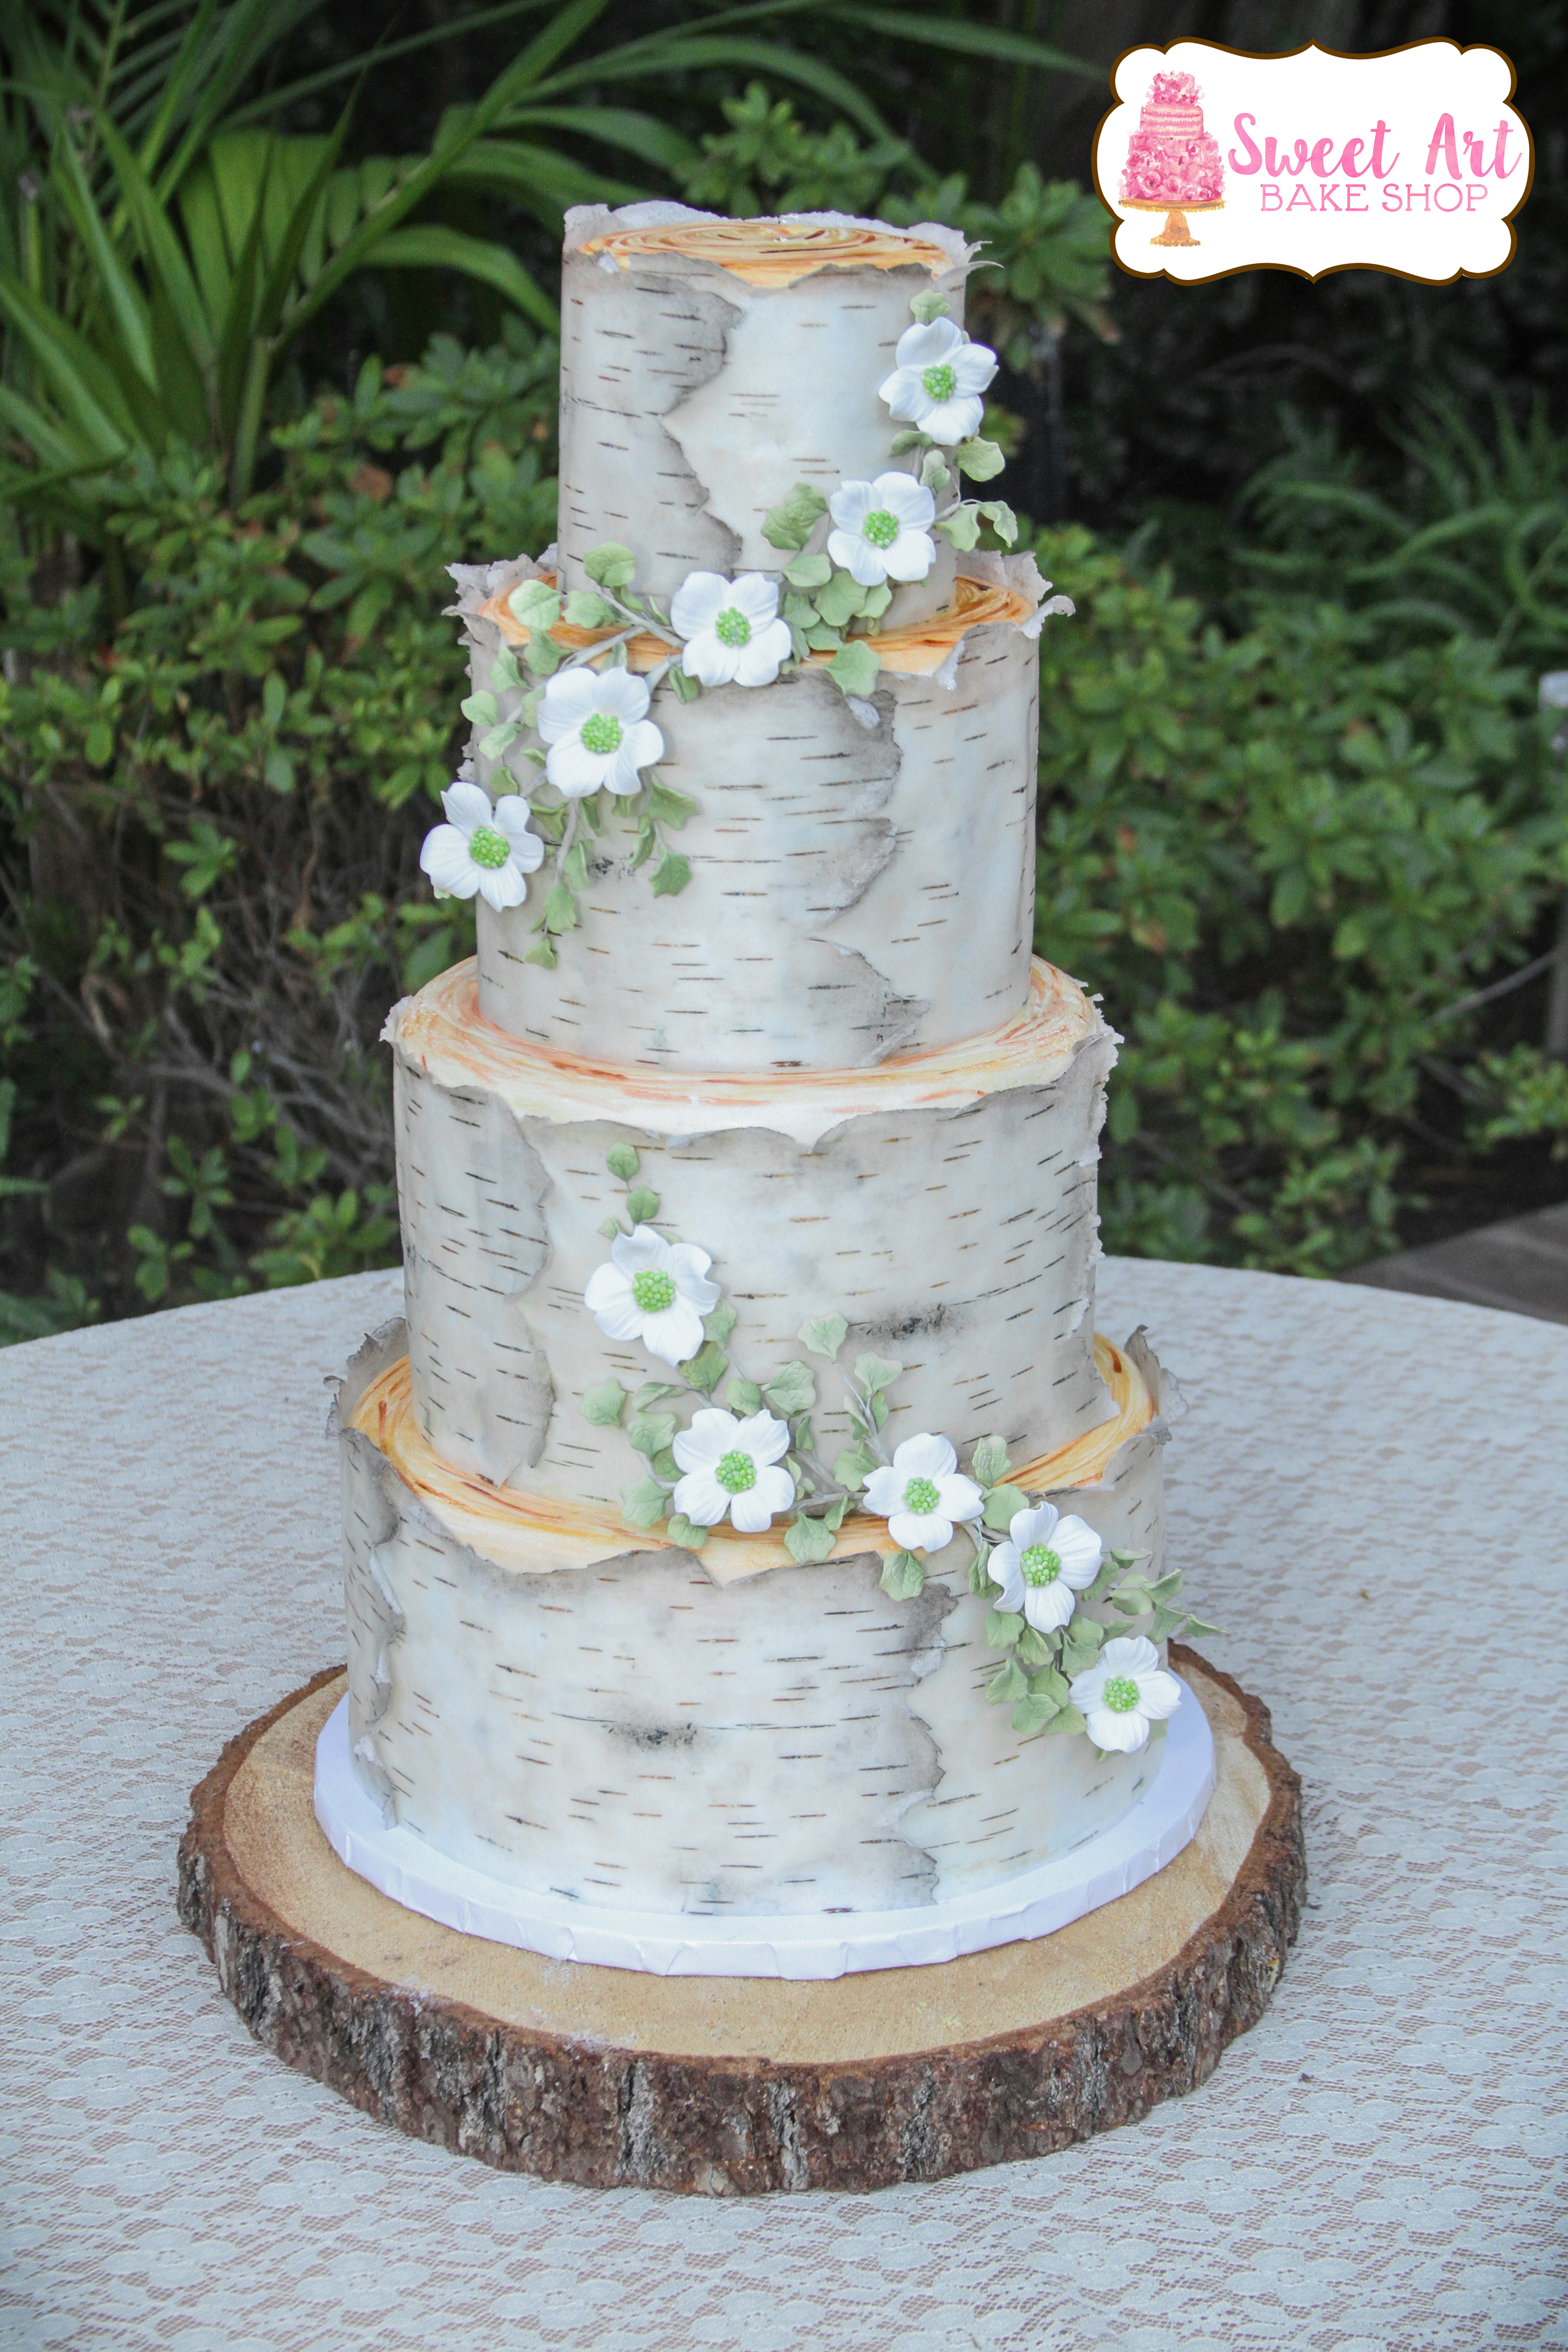 Dana & Jesse's Birch Tree Cake